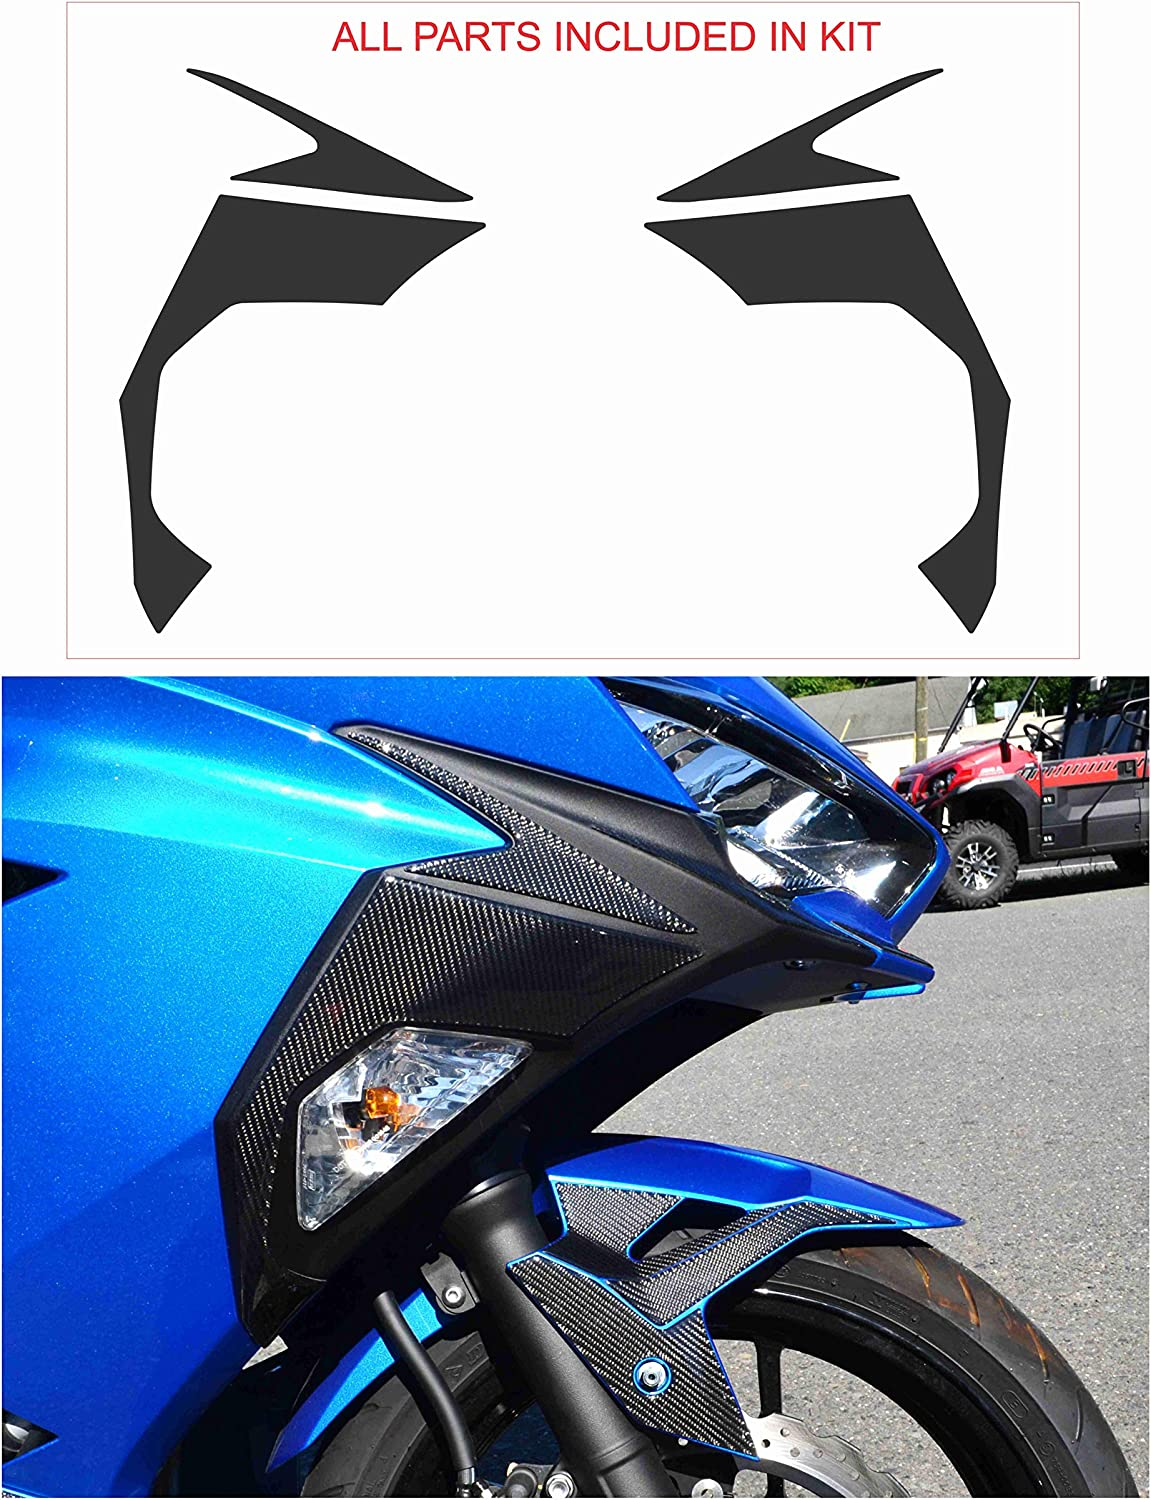 Premium Real Carbon Fiber Sides Fairing Blinker Cover Trim kit fit Kawasaki Ninja 400 2018 2019 2020 Sticker Overlay Trim